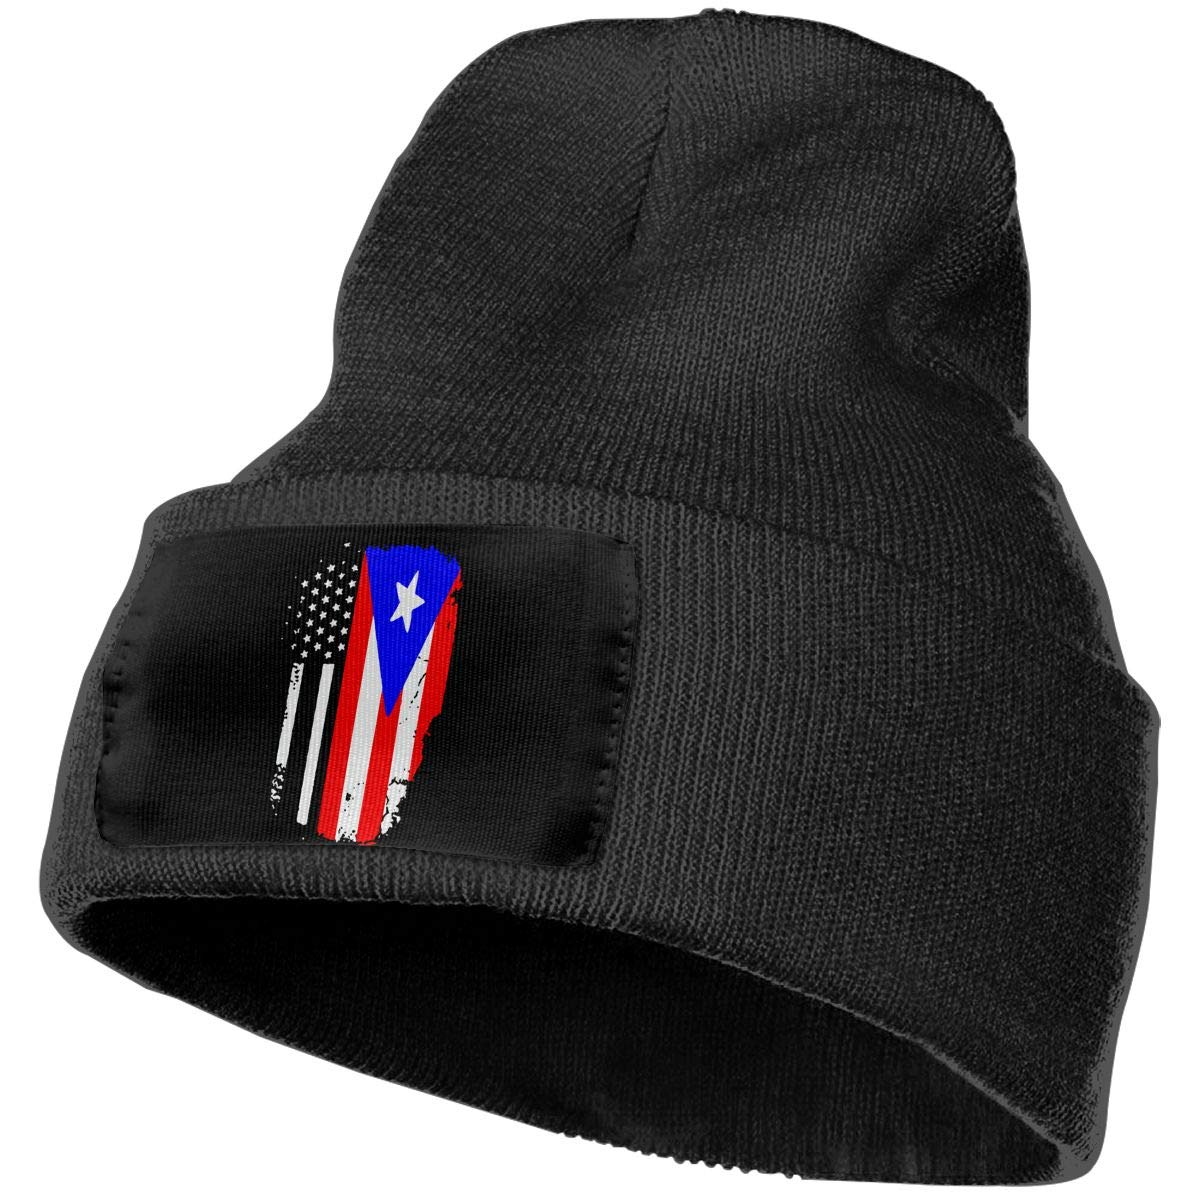 Unisex Flag of Puerto Rico Outdoor Stretch Knit Beanies Hat Soft Winter Skull Caps